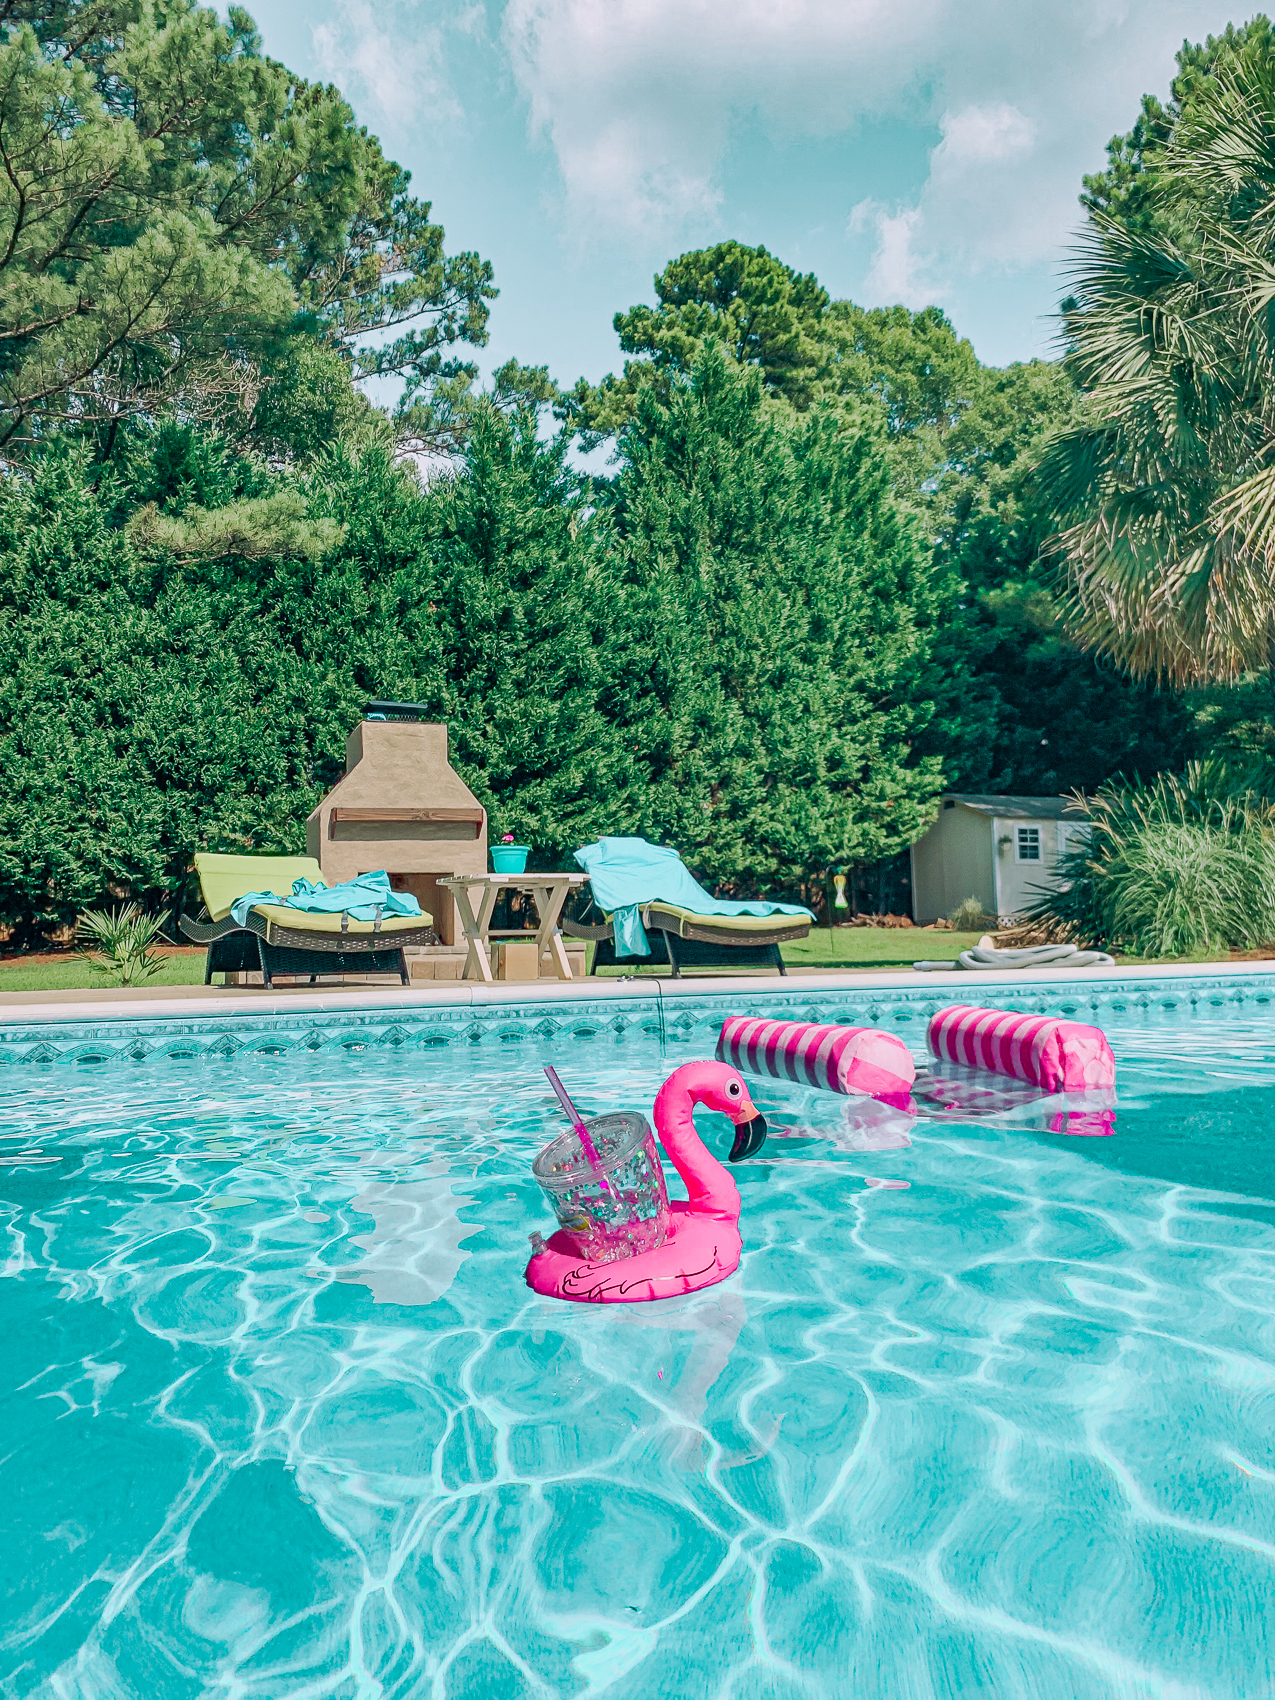 summer time, pool side, lifestyle blogger, recap weekly, day in the life, week in the life, flamingo float, summer fun, life, pool side, fun fun, party lifestyle, cherries, food, dinner by the pool, dogs, target, pool floats, backyard, summertime